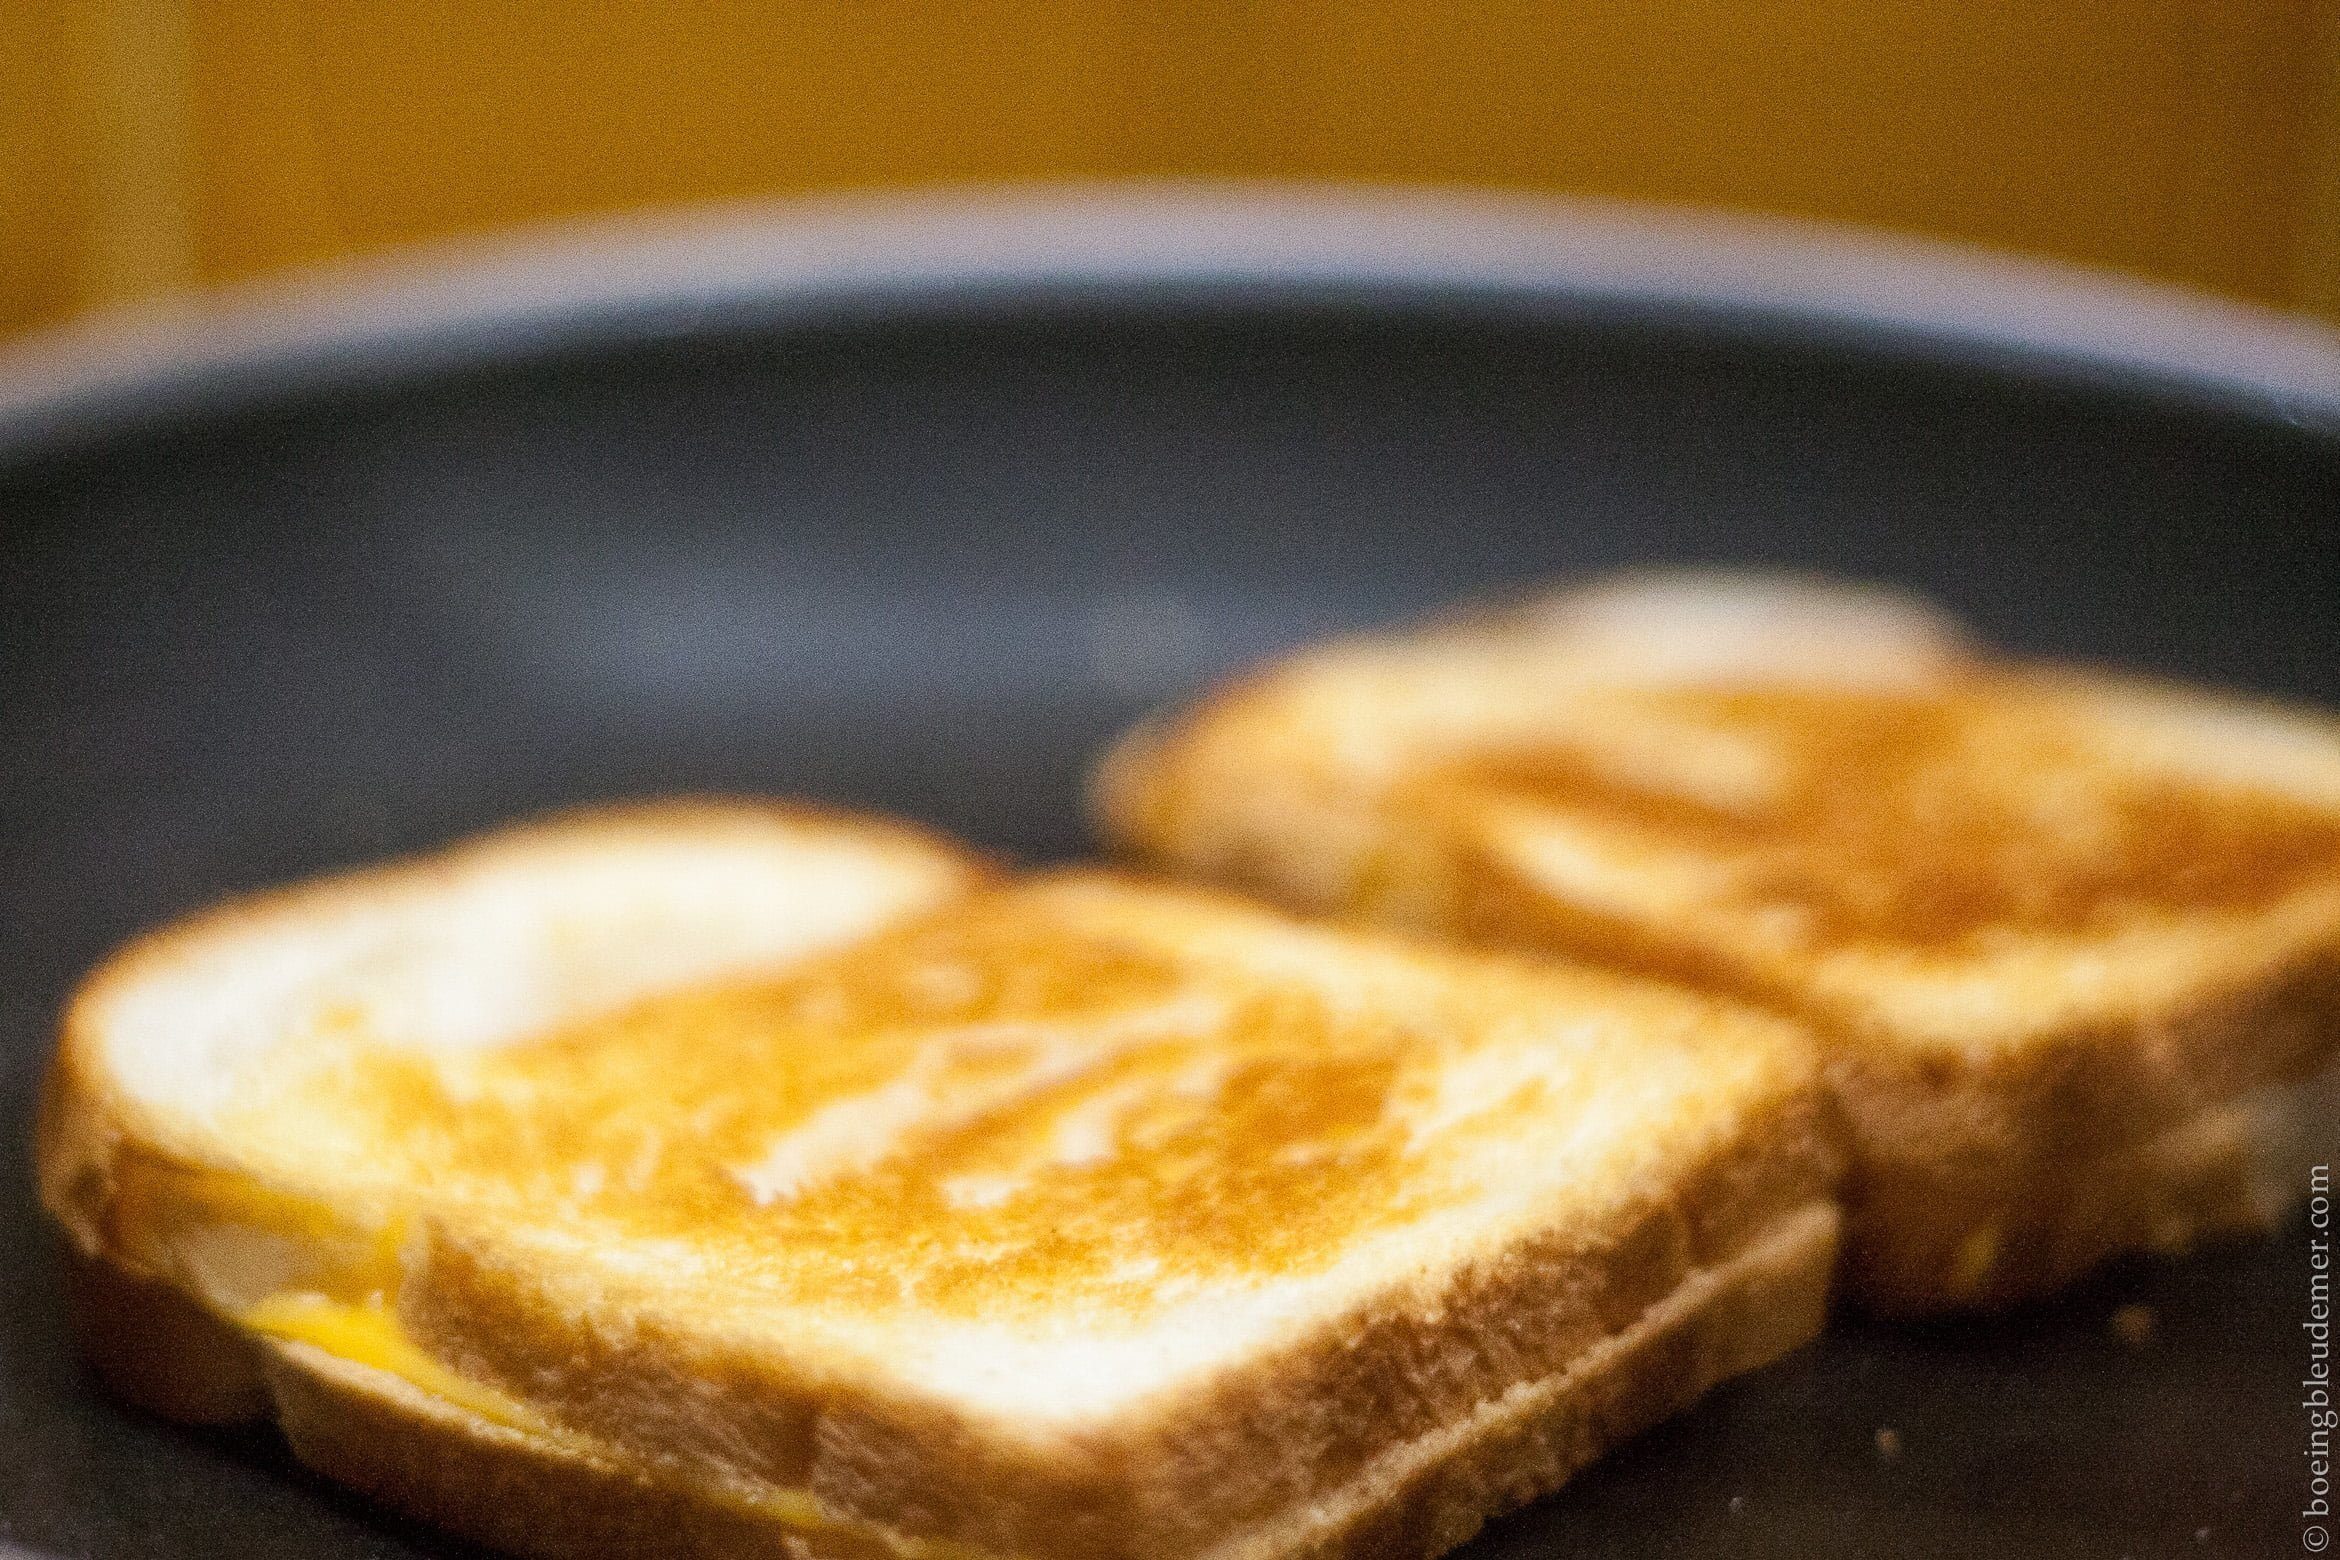 Grourmandise: grilled-cheese